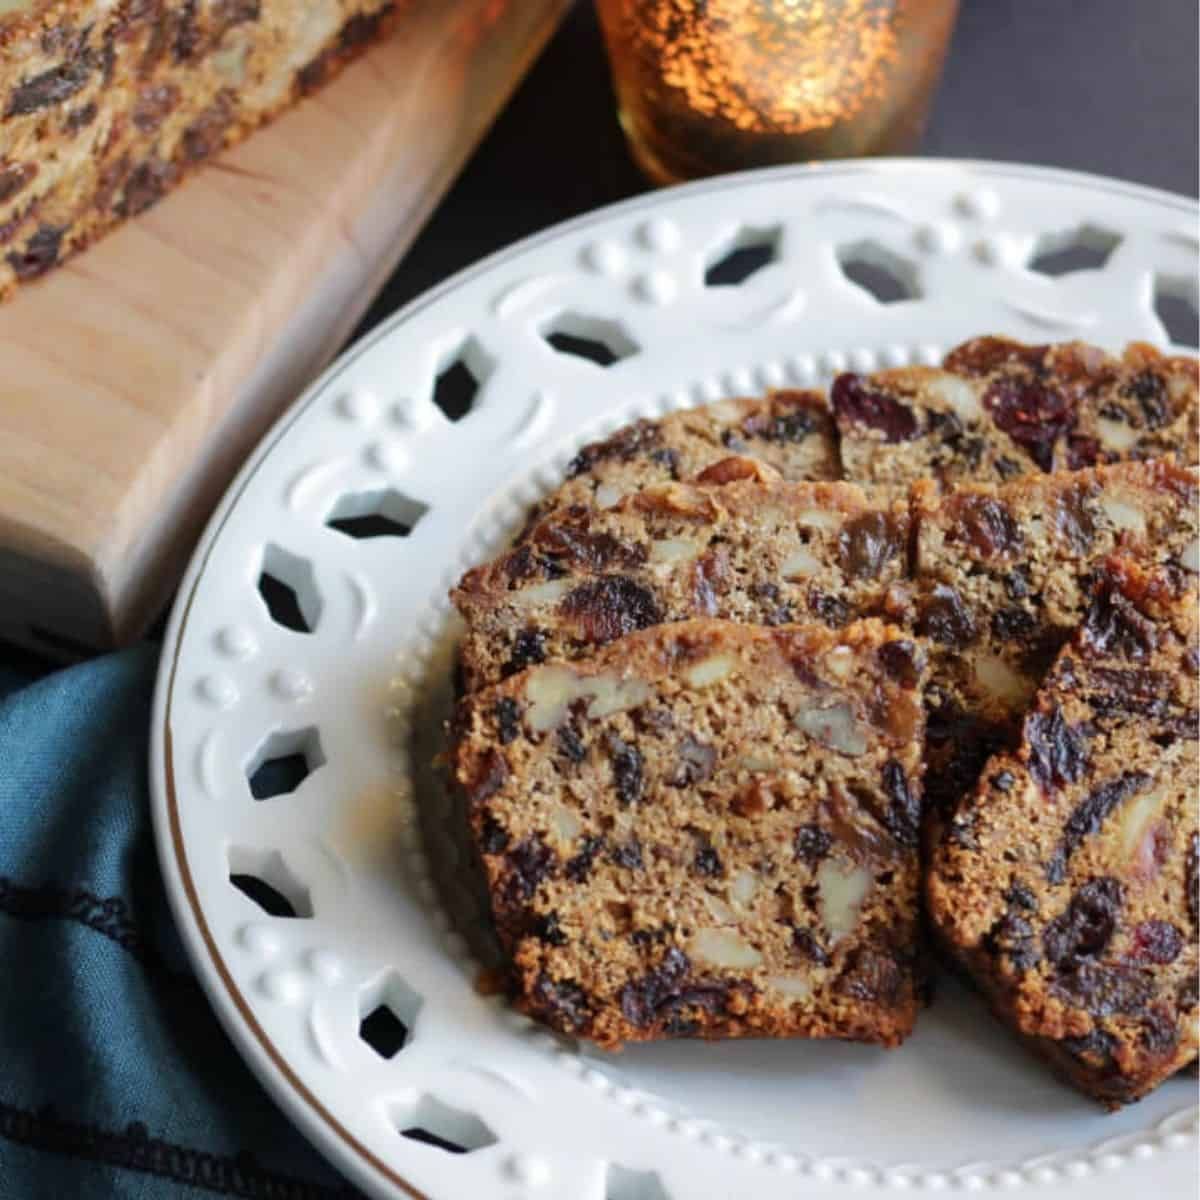 sliced fruitcake with nuts on lacy, white plate